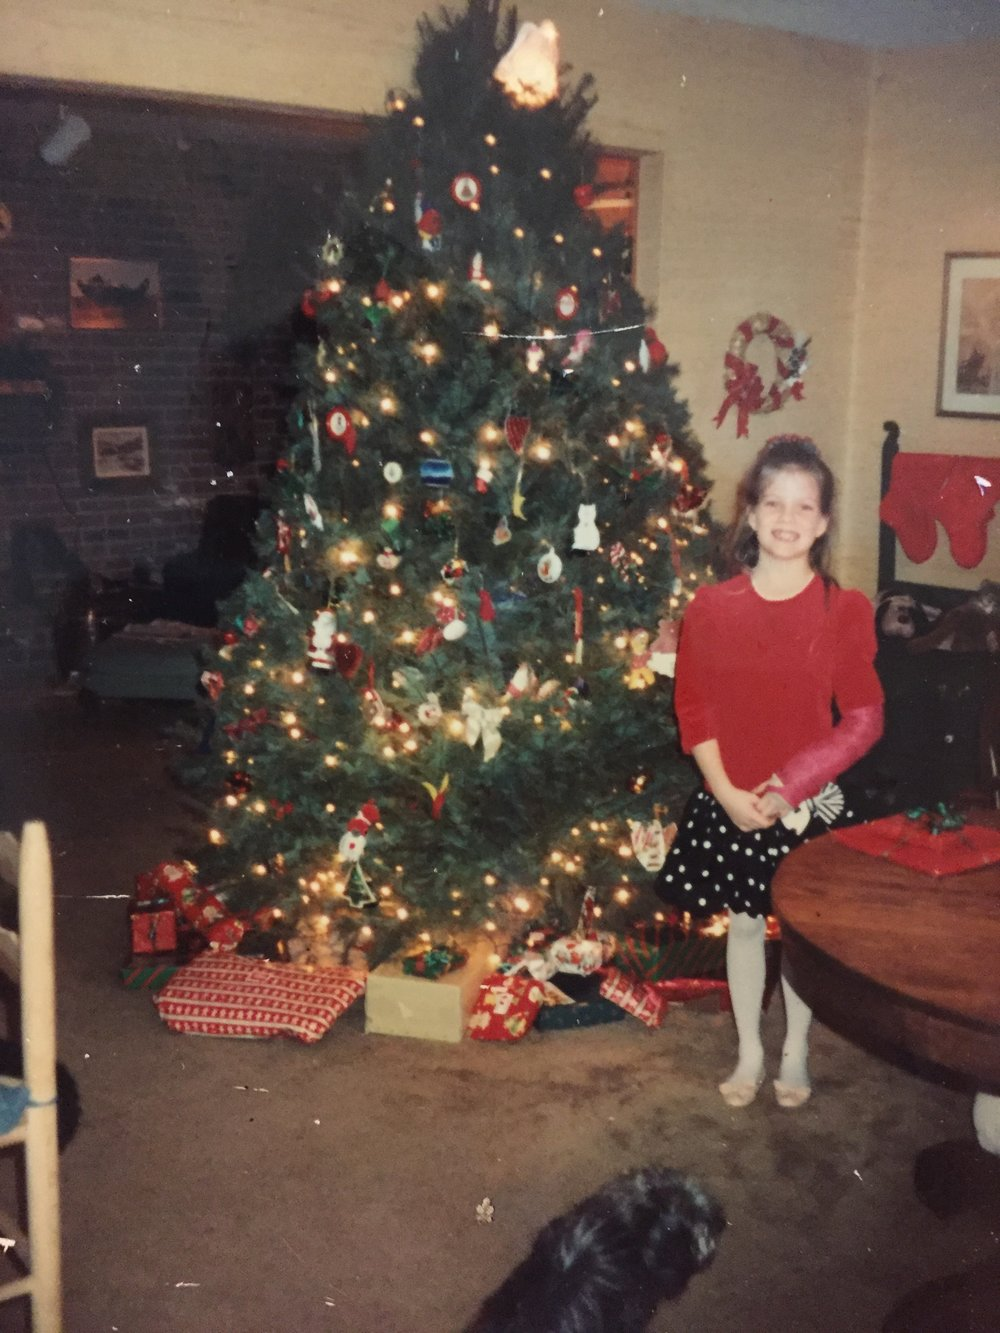 a little Shannon, from the days before Christmas felt like pain for me